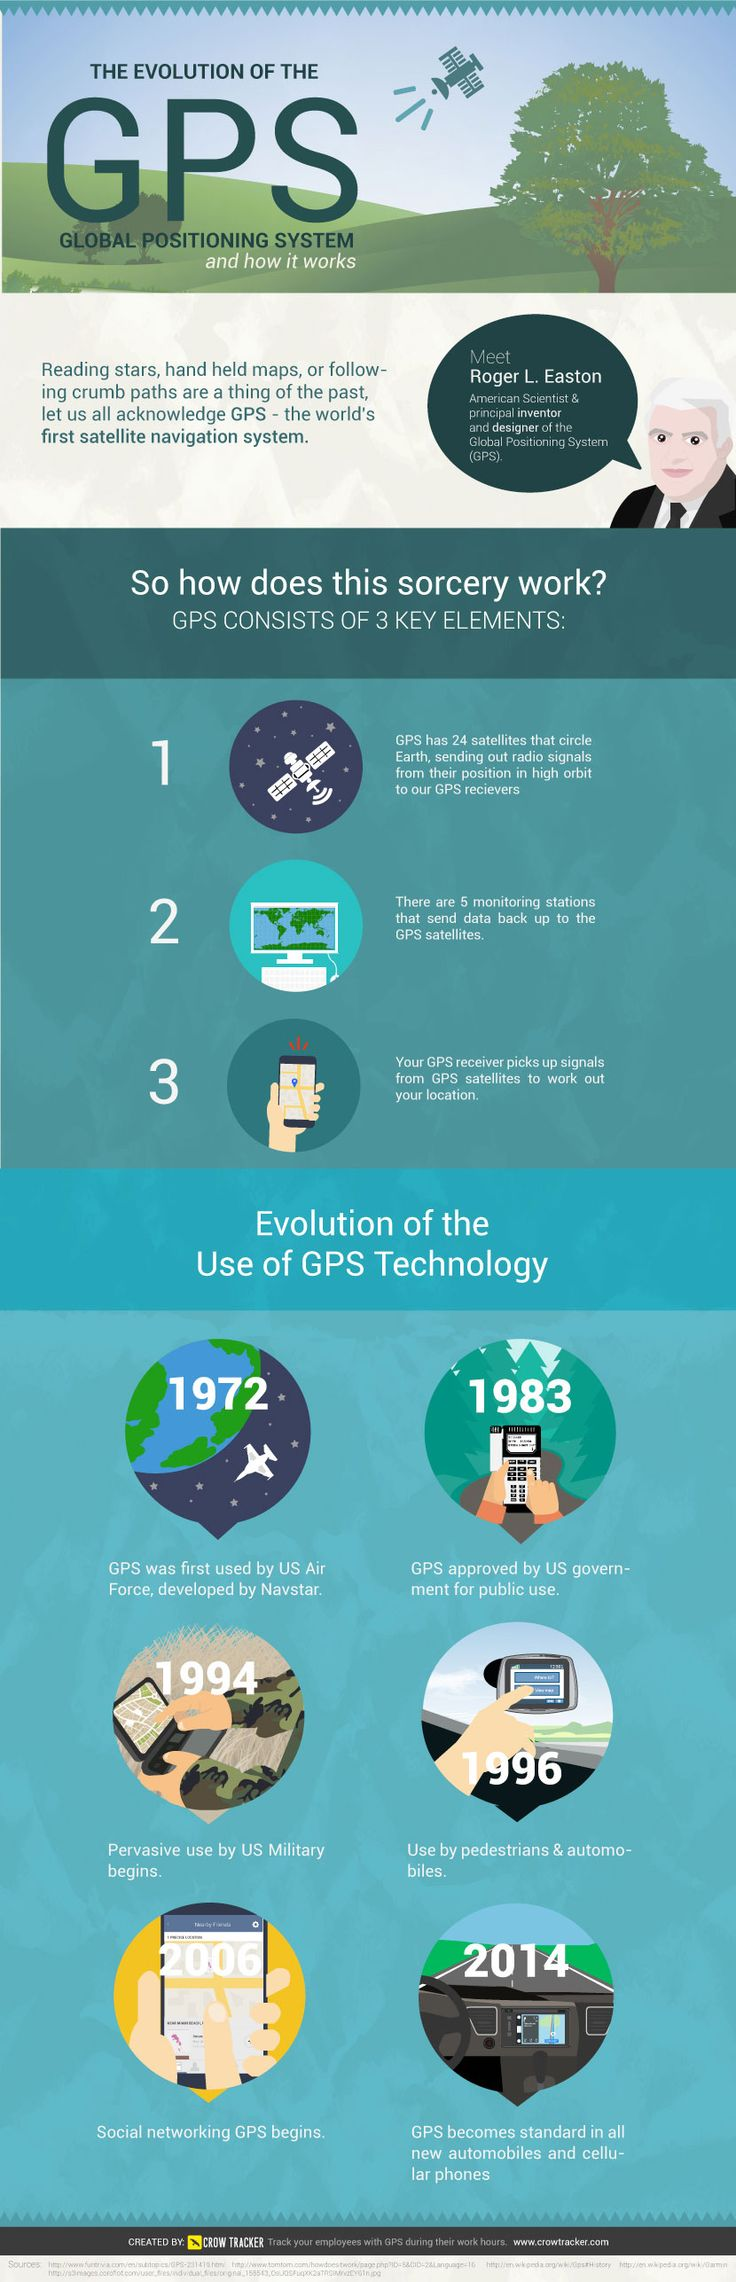 Evolution of GPS Infographic and How Global Positioning Systems Work